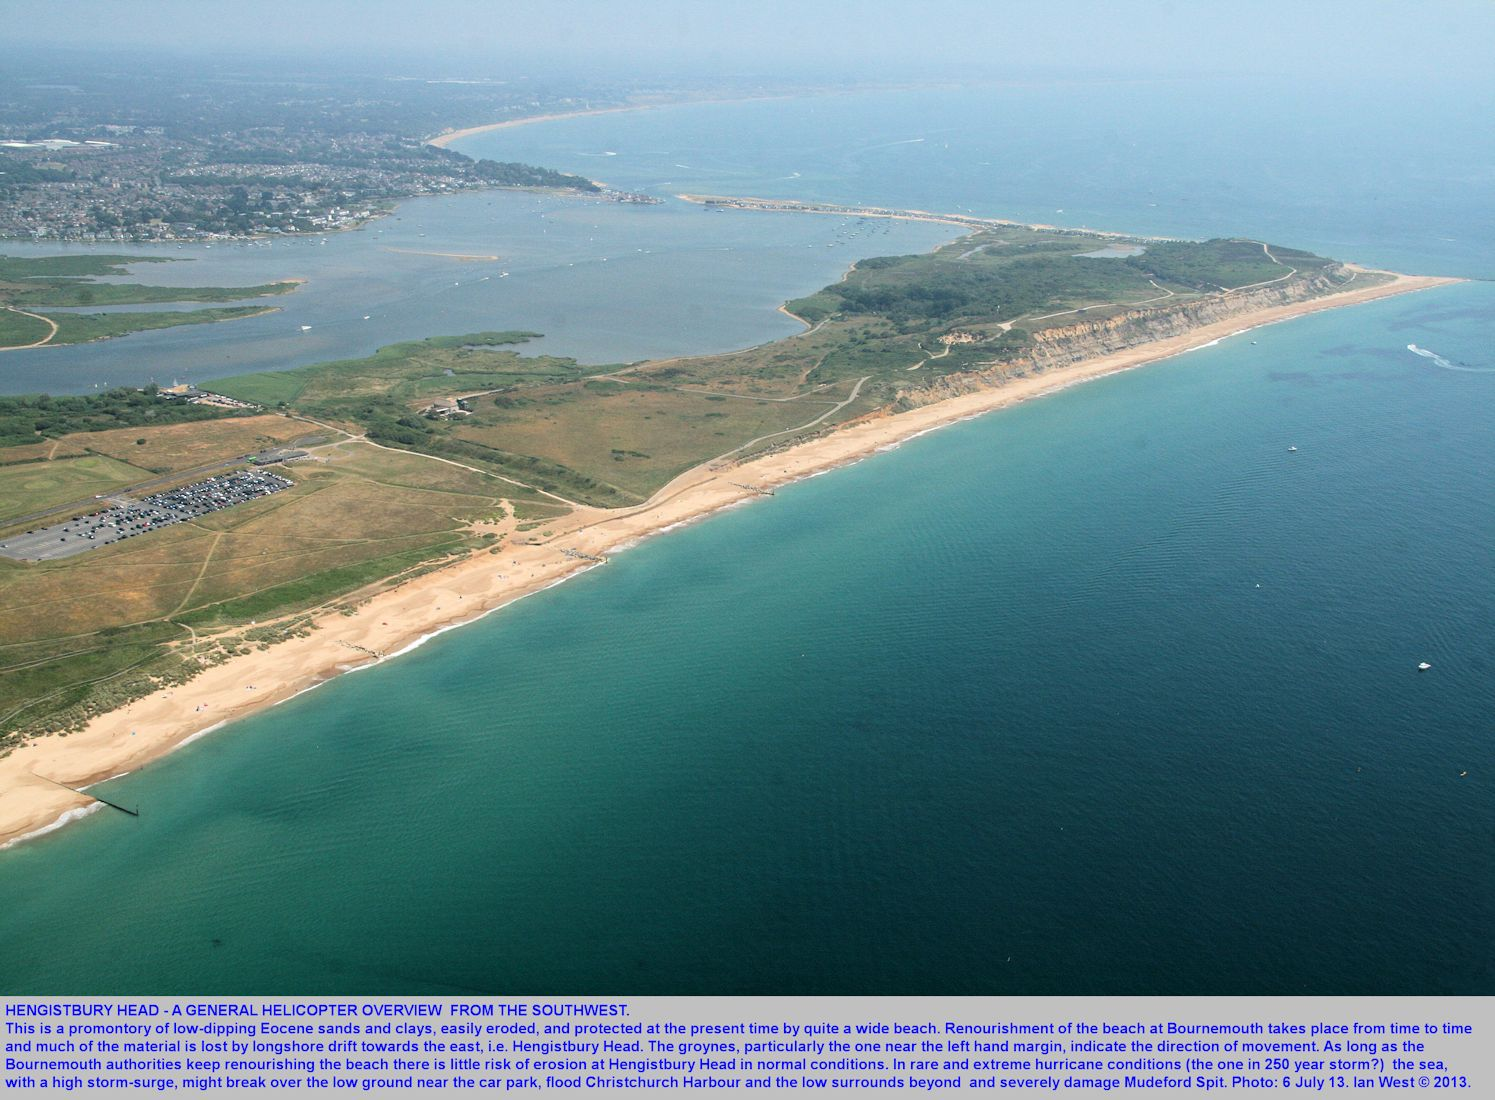 A general overview from the southwest of Hengistbury Head, Bournemouth, Dorset, seen from a helicopter, 6th July 2013